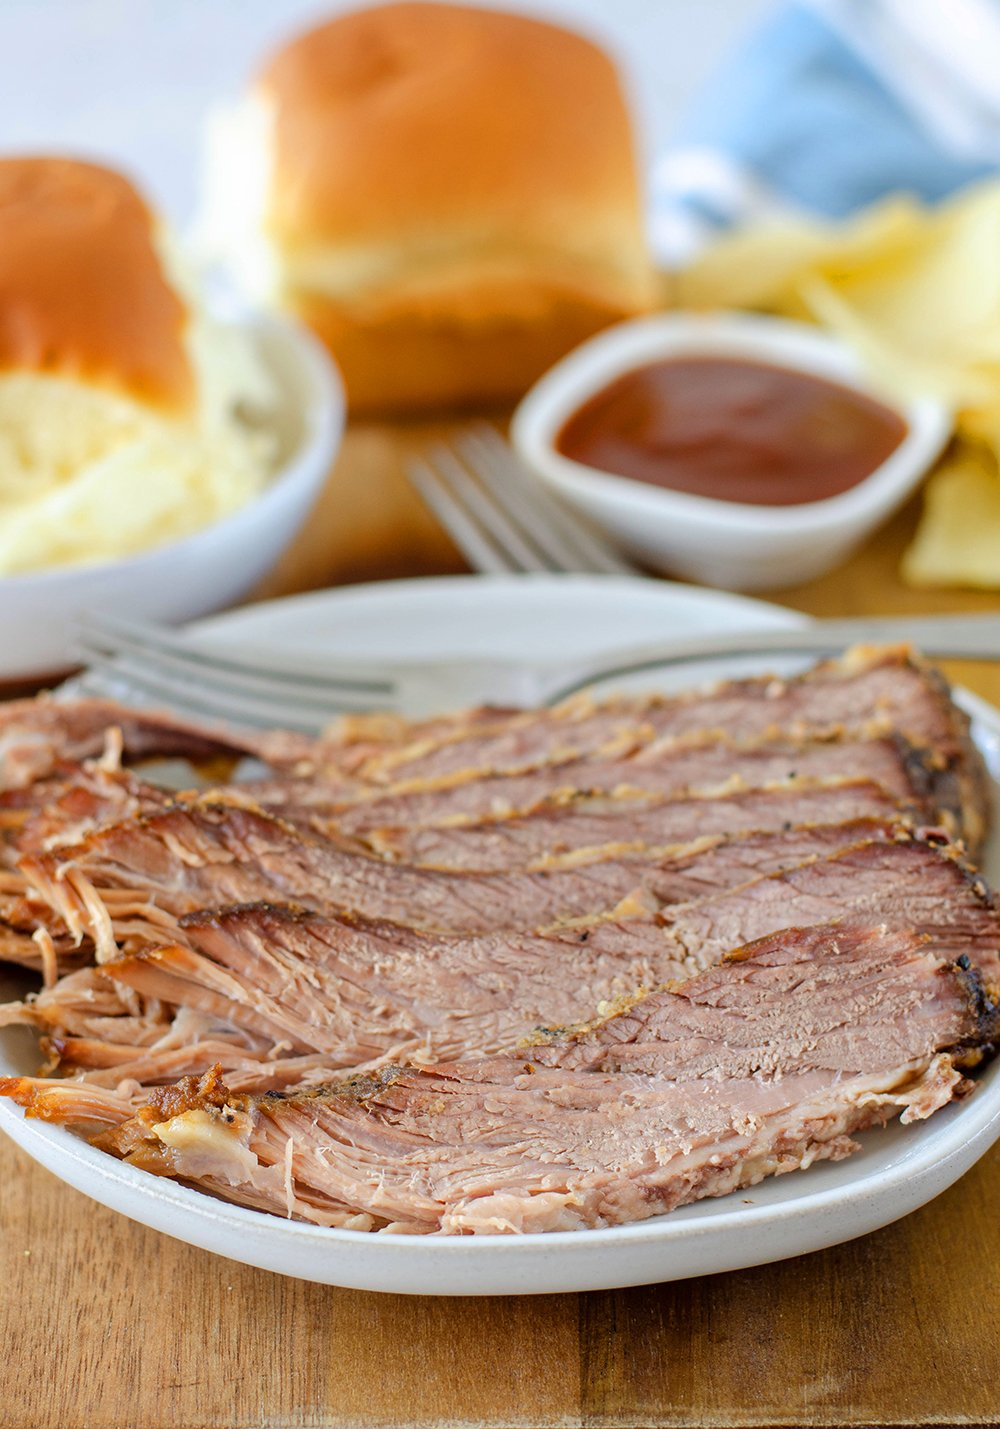 Slow Cooker Beef Brisket Recipe sliced on a plate